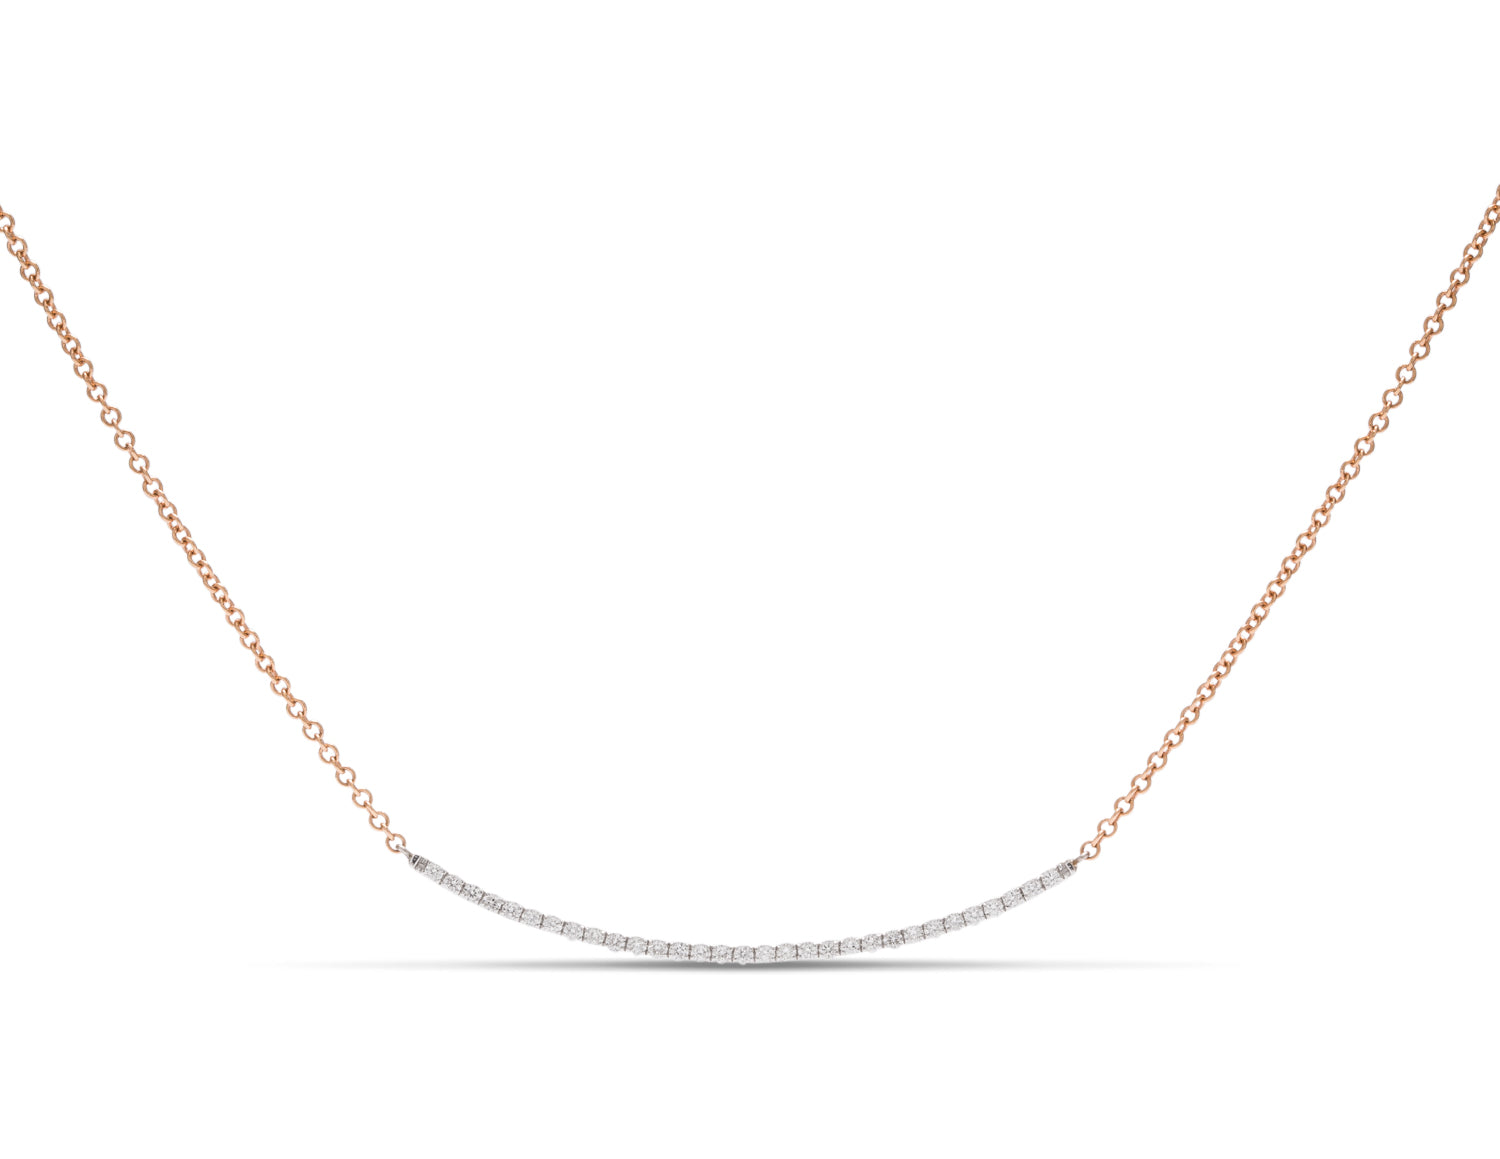 18k White Gold Diamond Bar Necklace - Charles Koll Jewellers